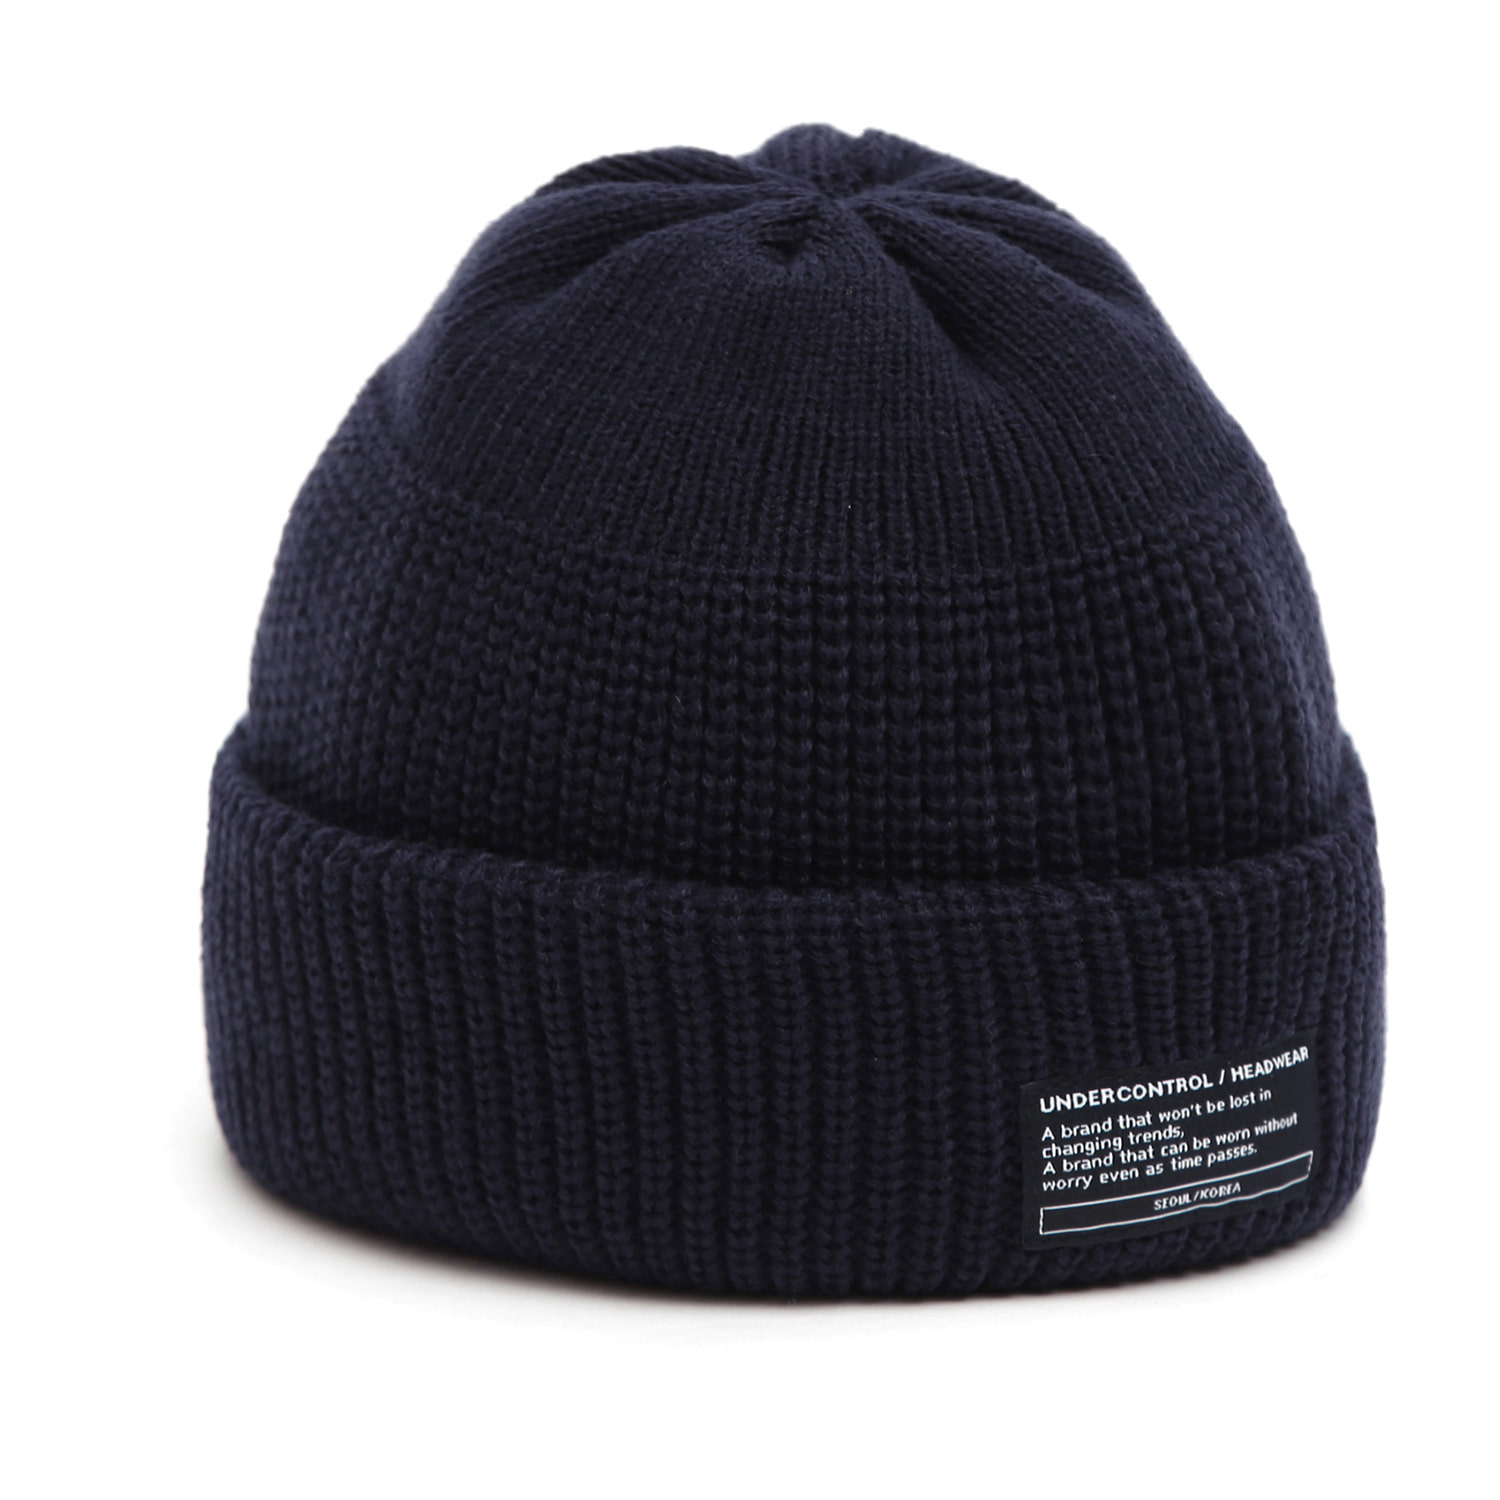 BEANIE / MONK FIT / NAVY